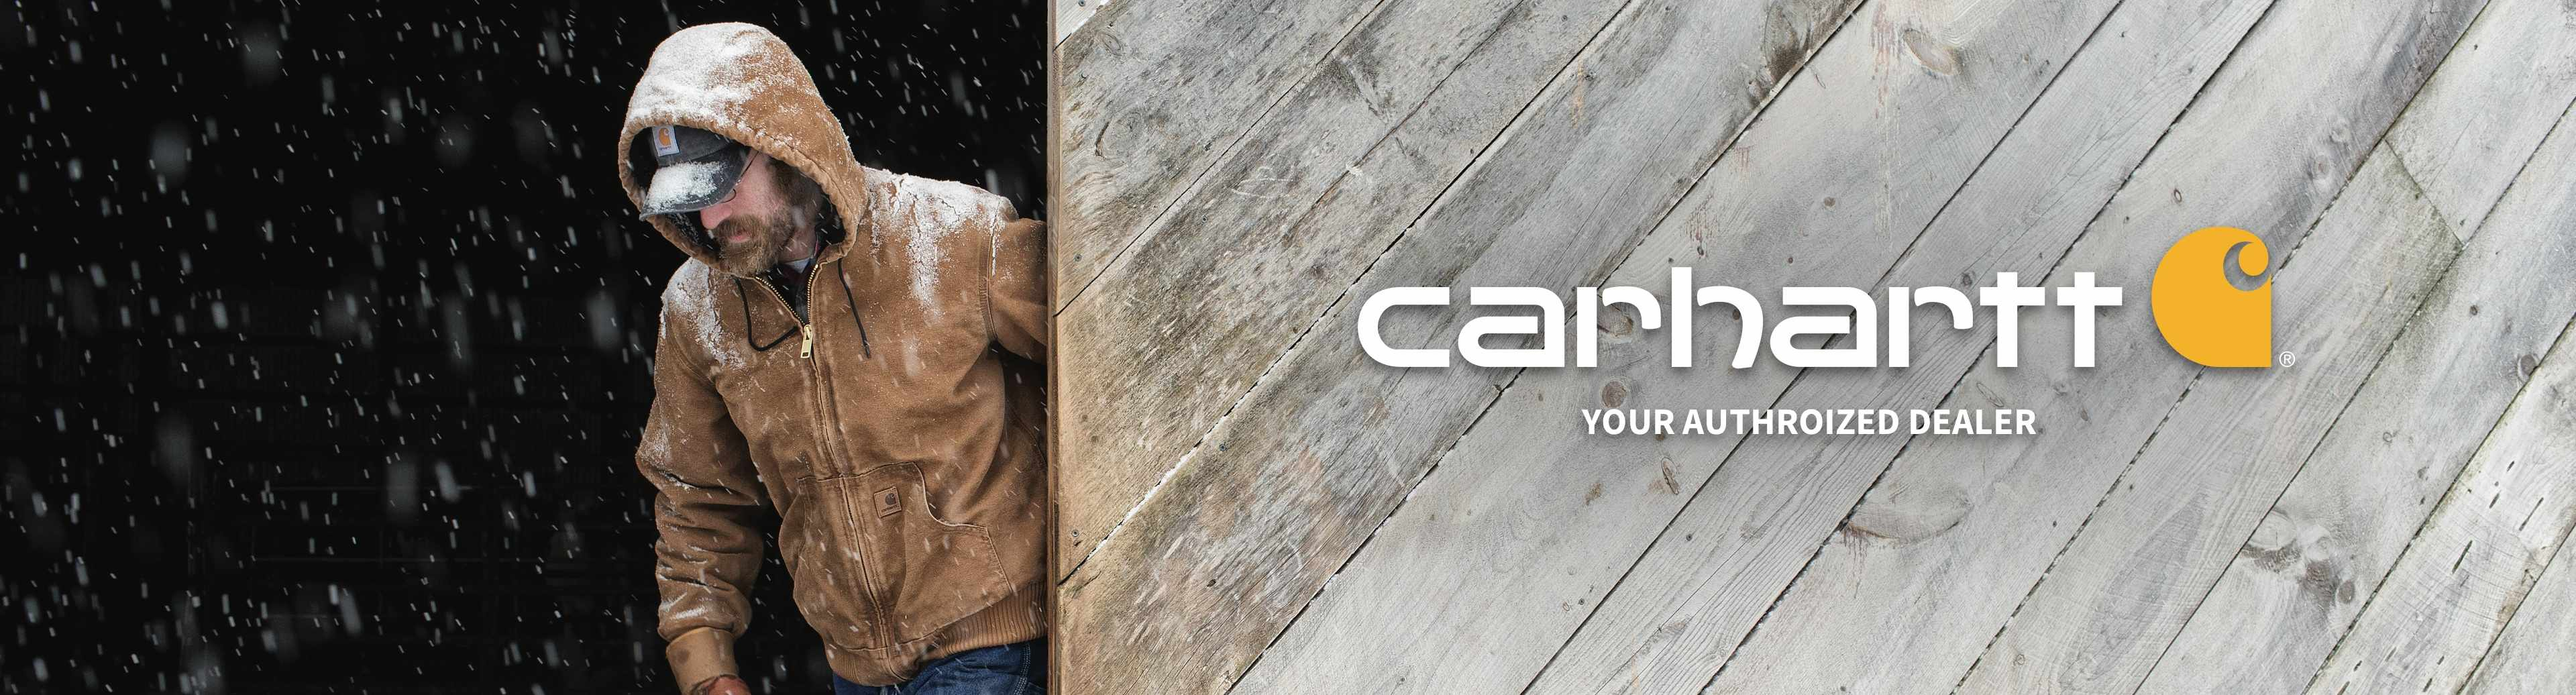 Carhartt logo with person wearing Carhartt jacket with words Your Authorized Dealer